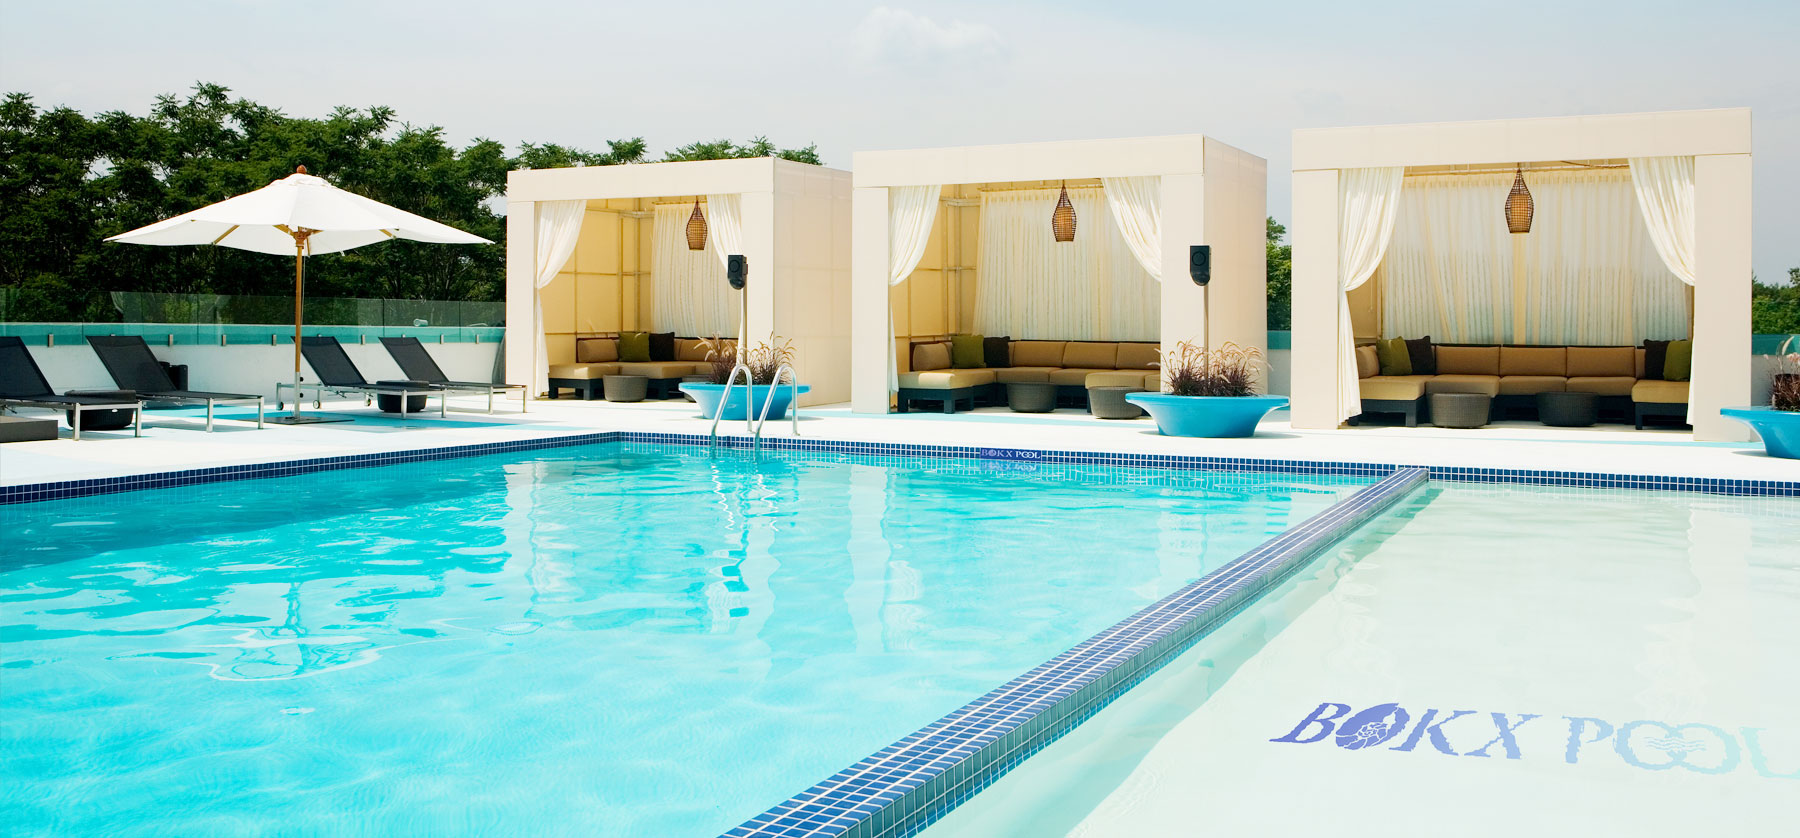 The Best Rooftop Pools in Boston